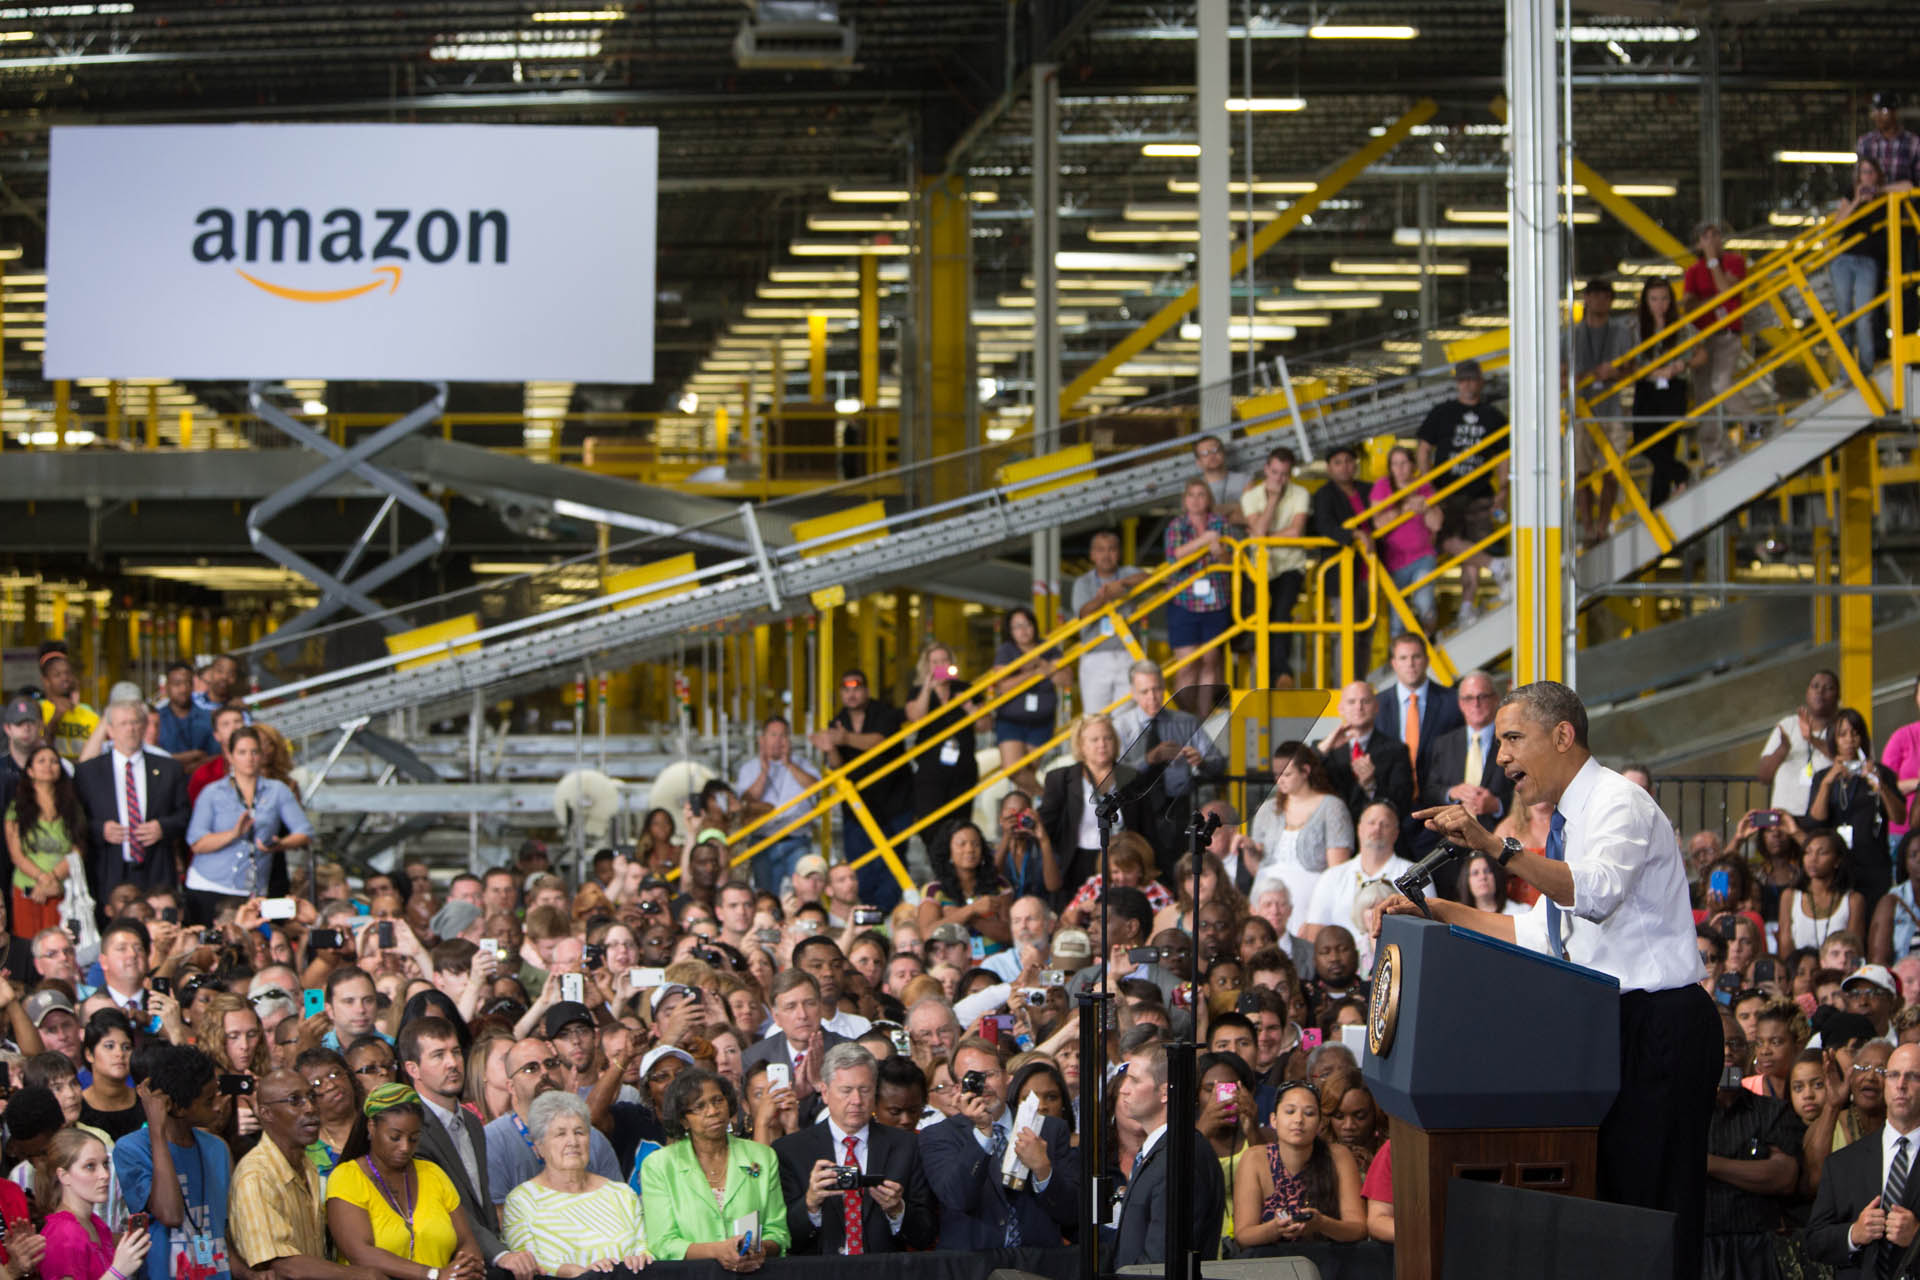 President Barack Obama delivers remarks on the economy at the Amazon Chattanooga Fulfillment Center